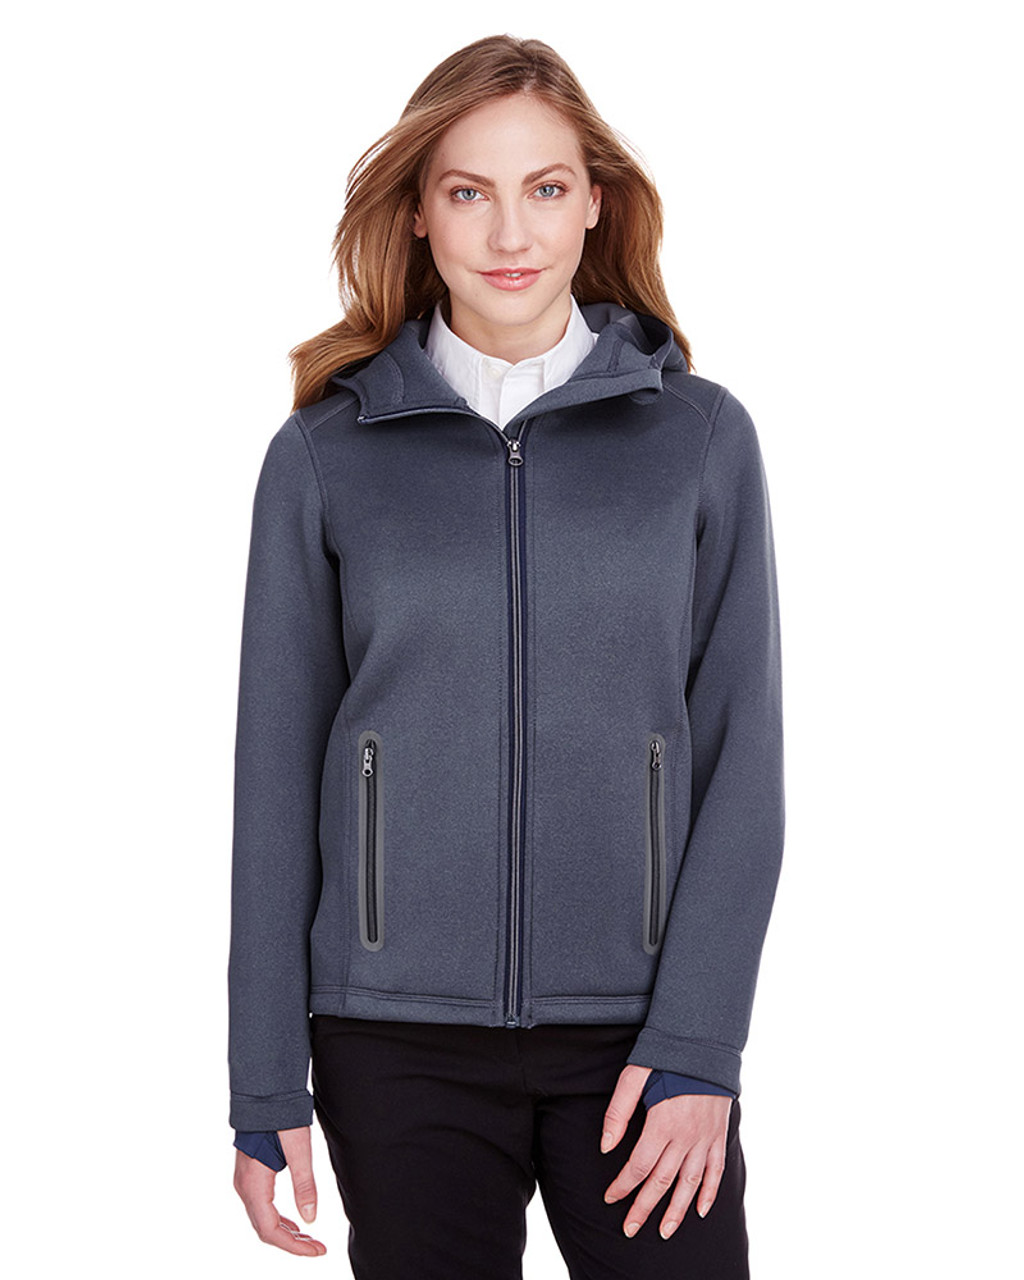 Classic Navy Heather/Carbon - NE707W Ash City - North End Ladies' Paramount Bonded Knit Jacket | Blankclothing.ca